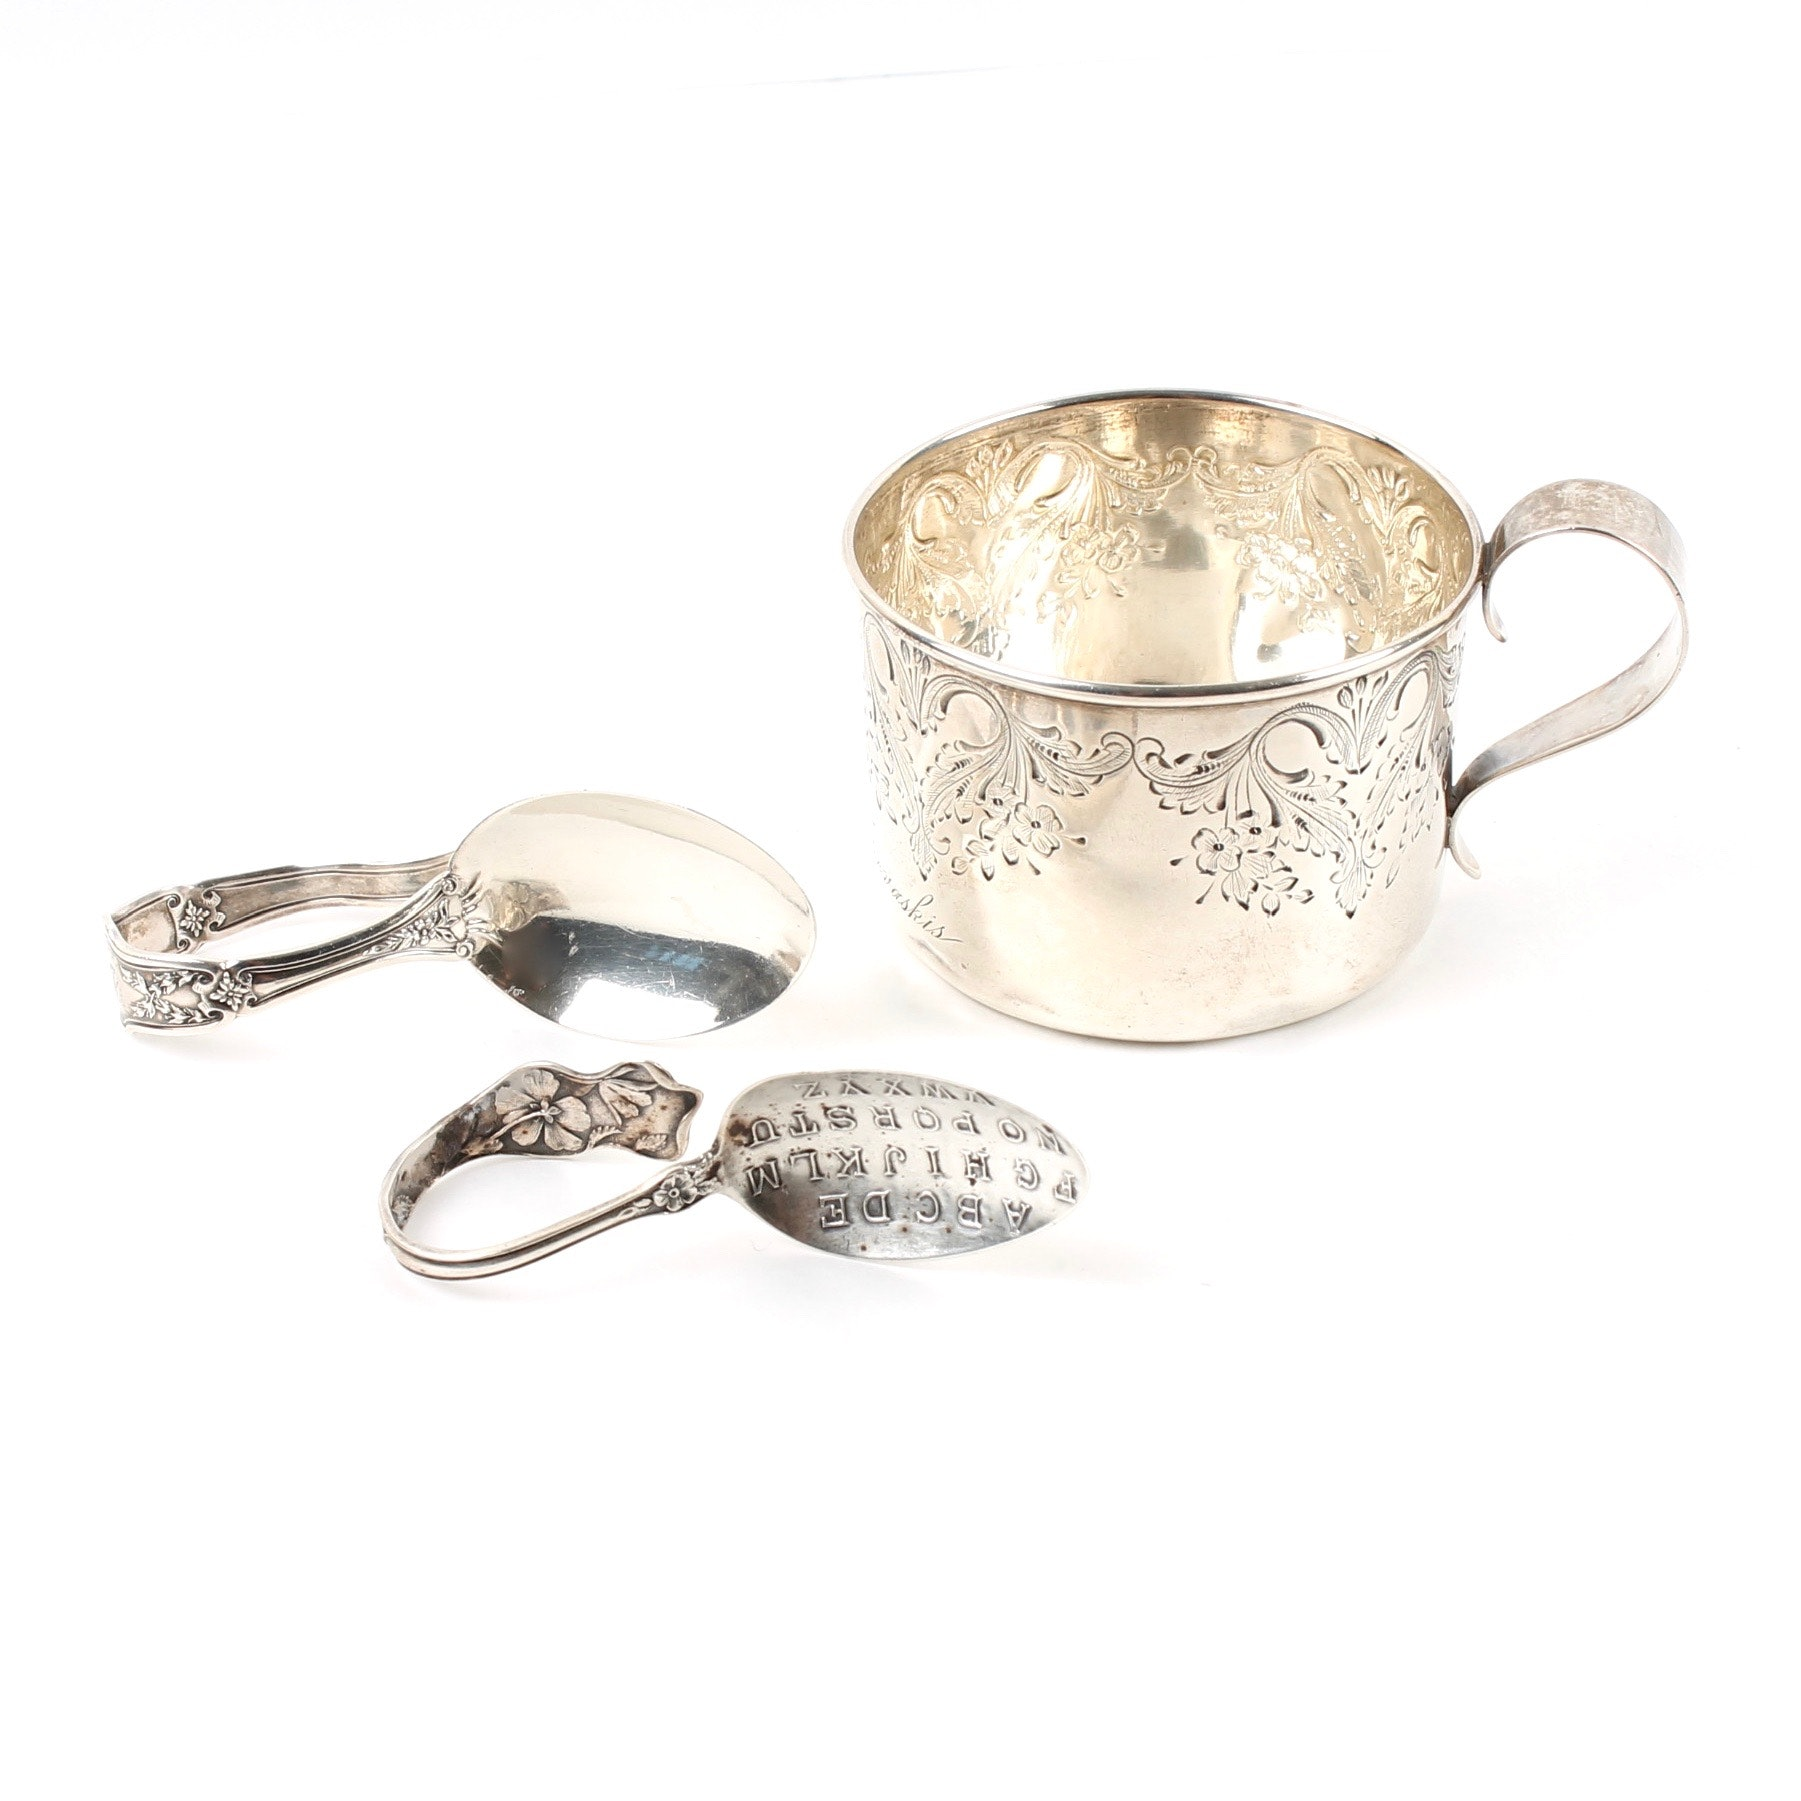 Vintage Sterling Silver Cup and Spoons